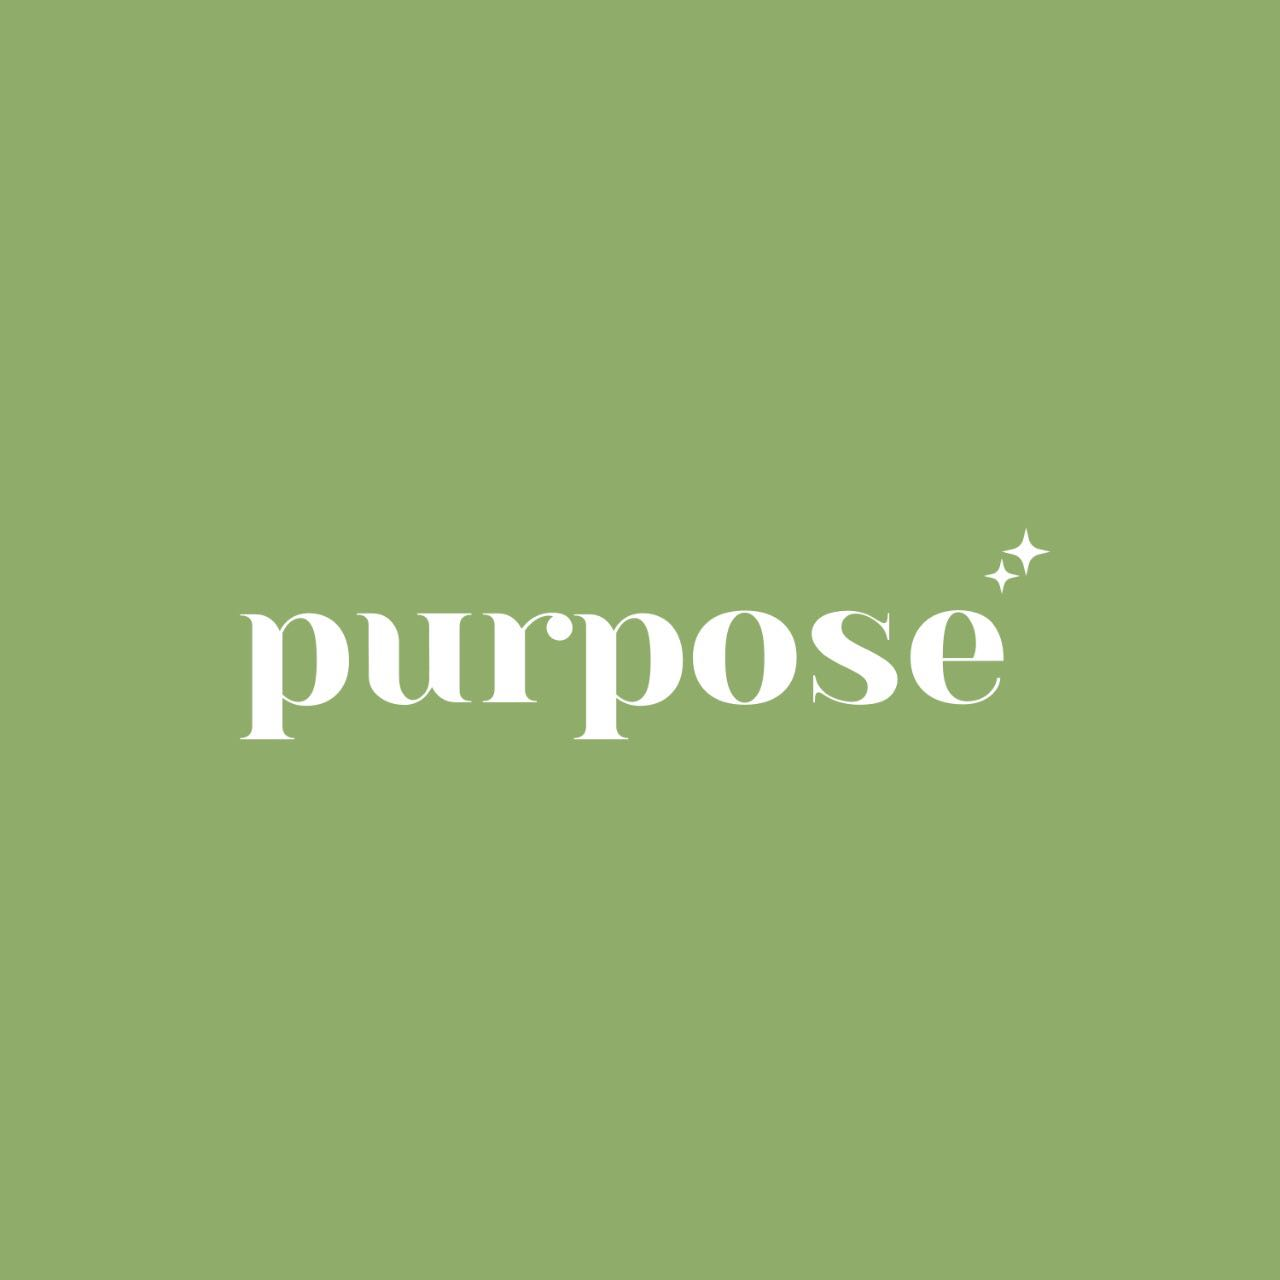 Purpose - Logotipo